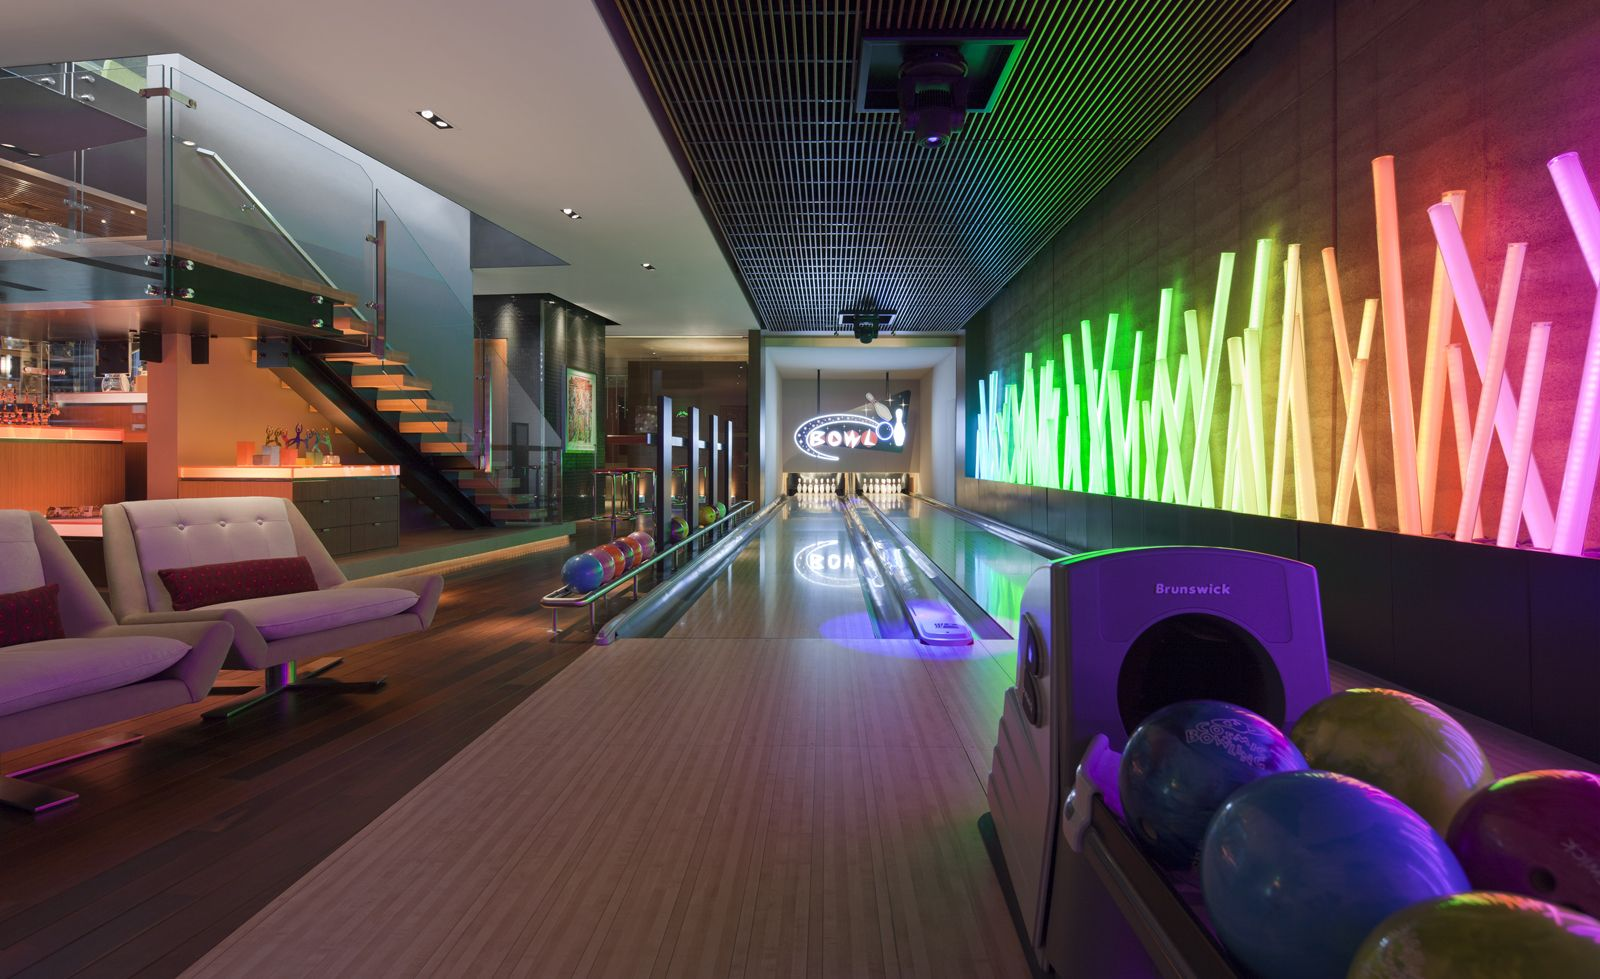 Pin By Fusion Bowling On Home Bowling Alley Seating Storage Ideas Finishing Basement Home Bowling Alley Game Room